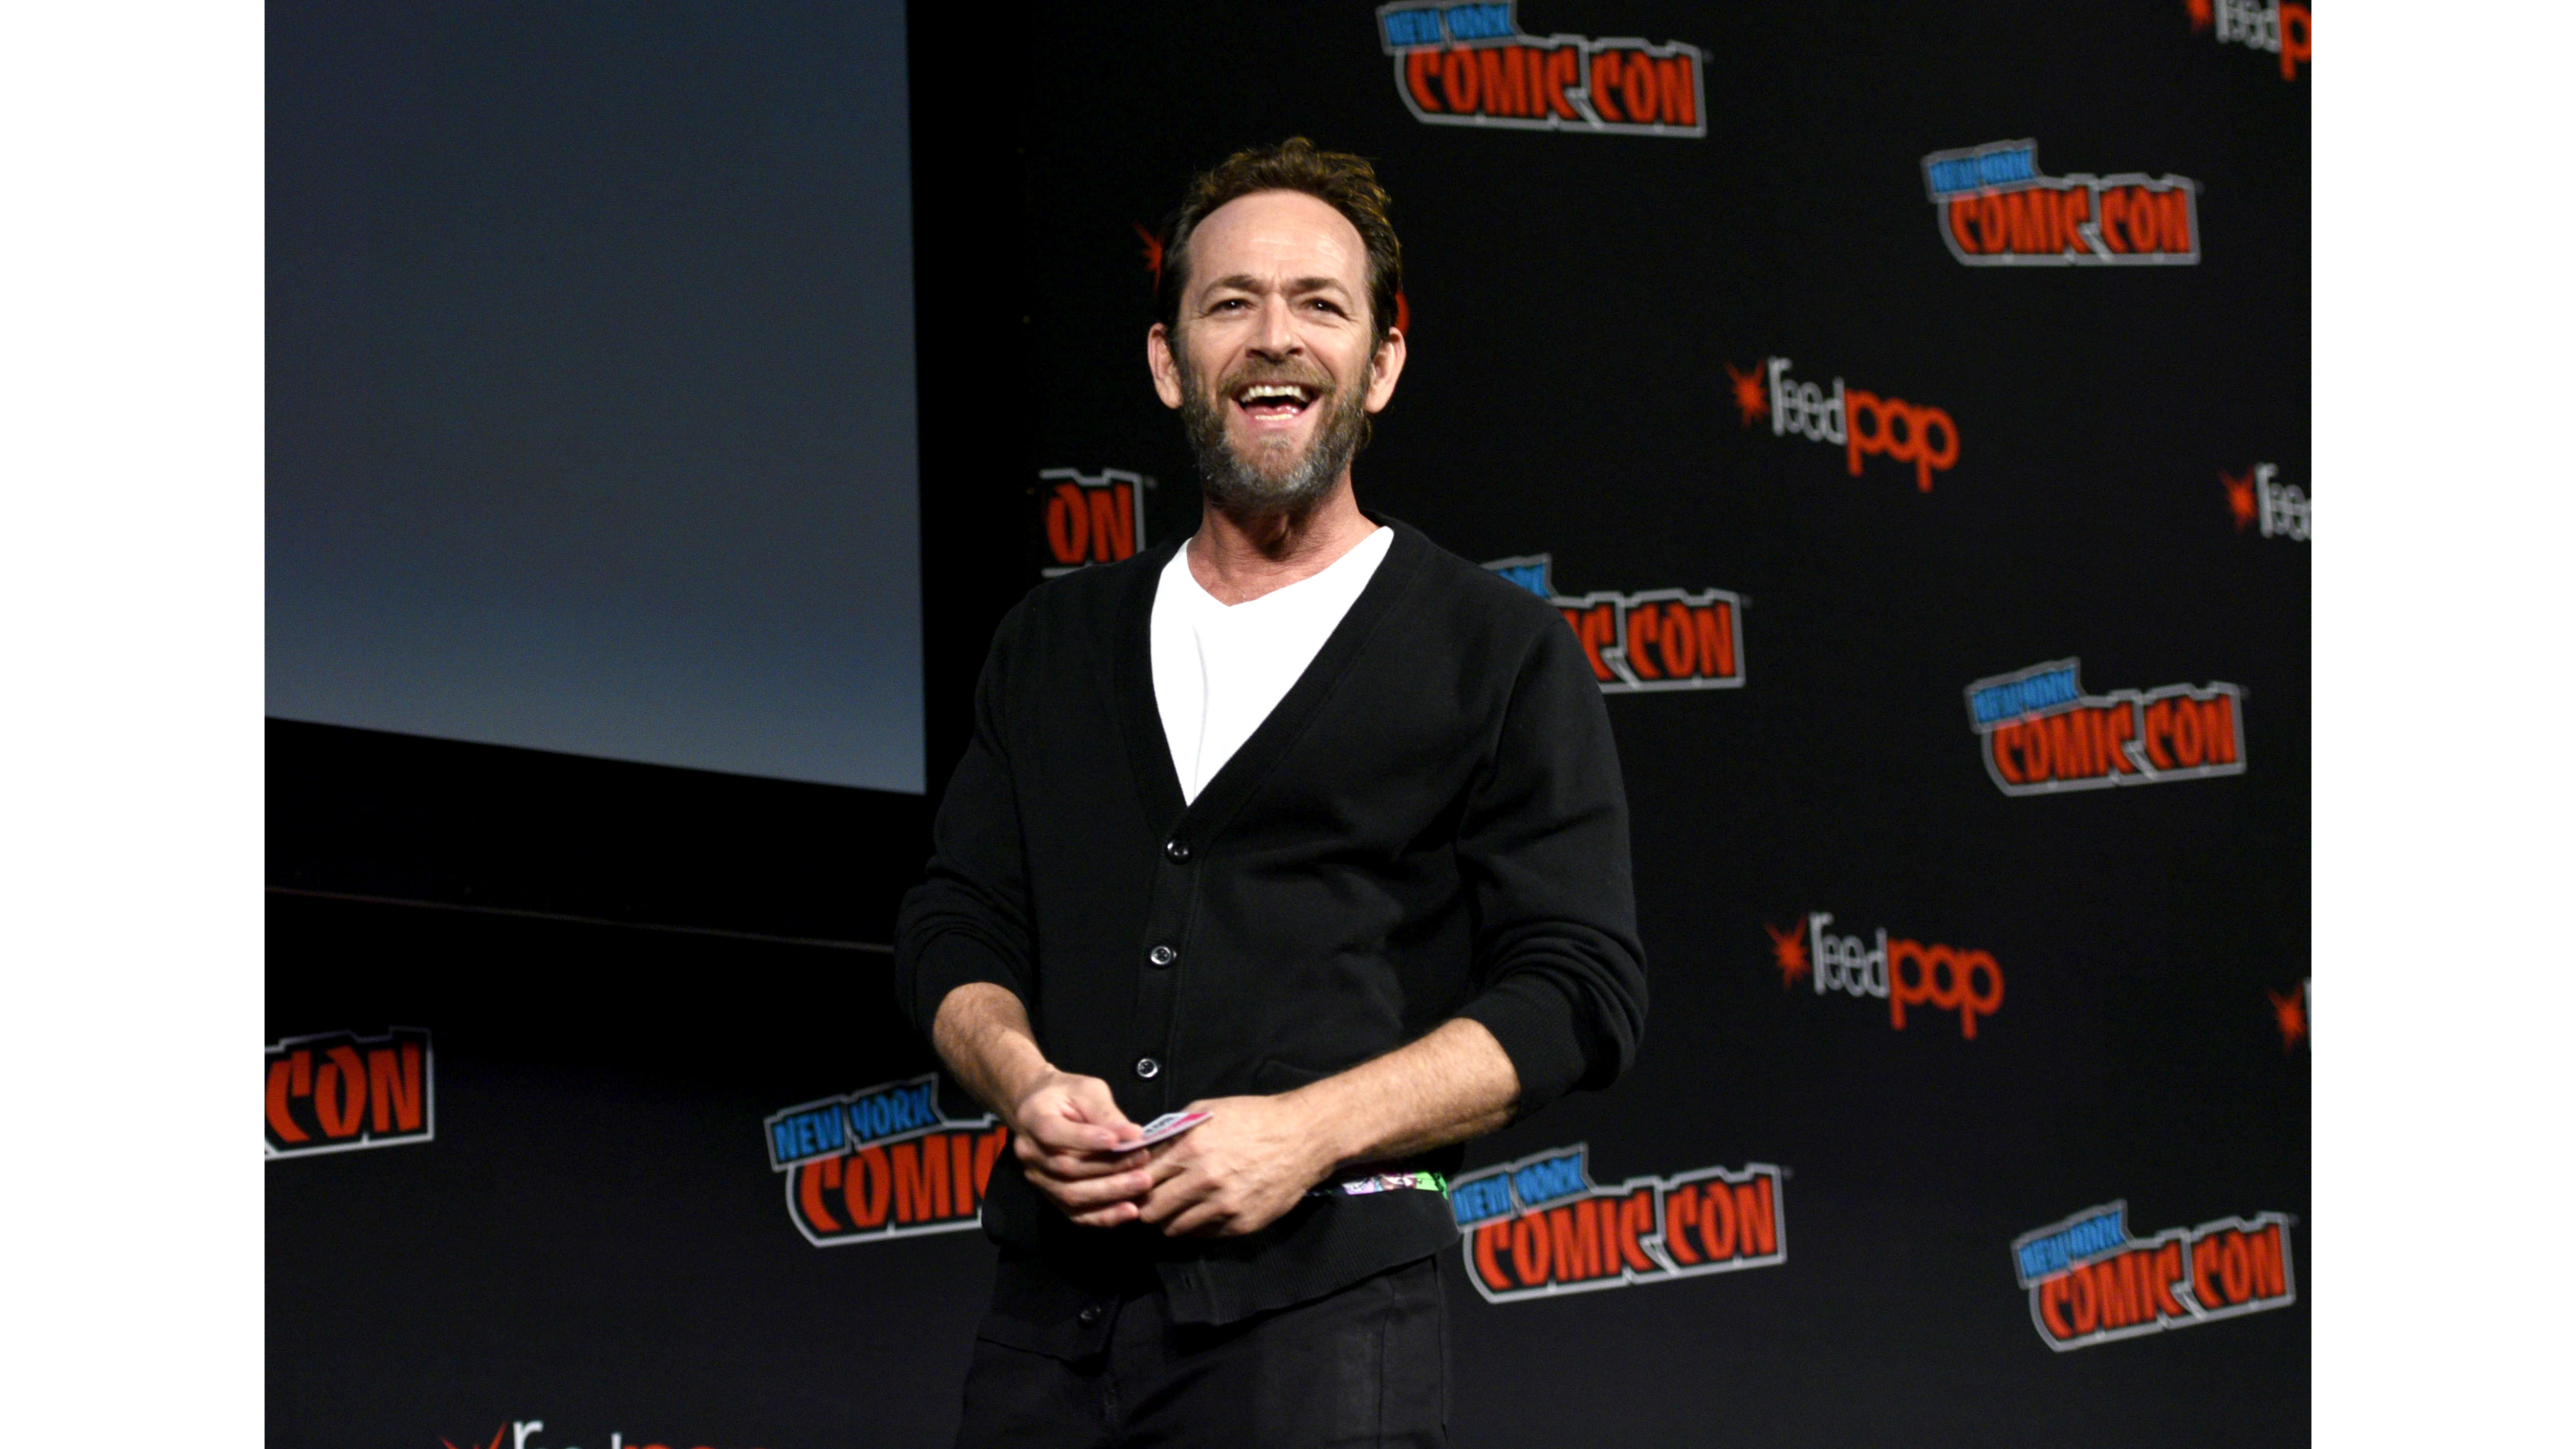 Luke_Perry_dead_at_52_0_20190304181022